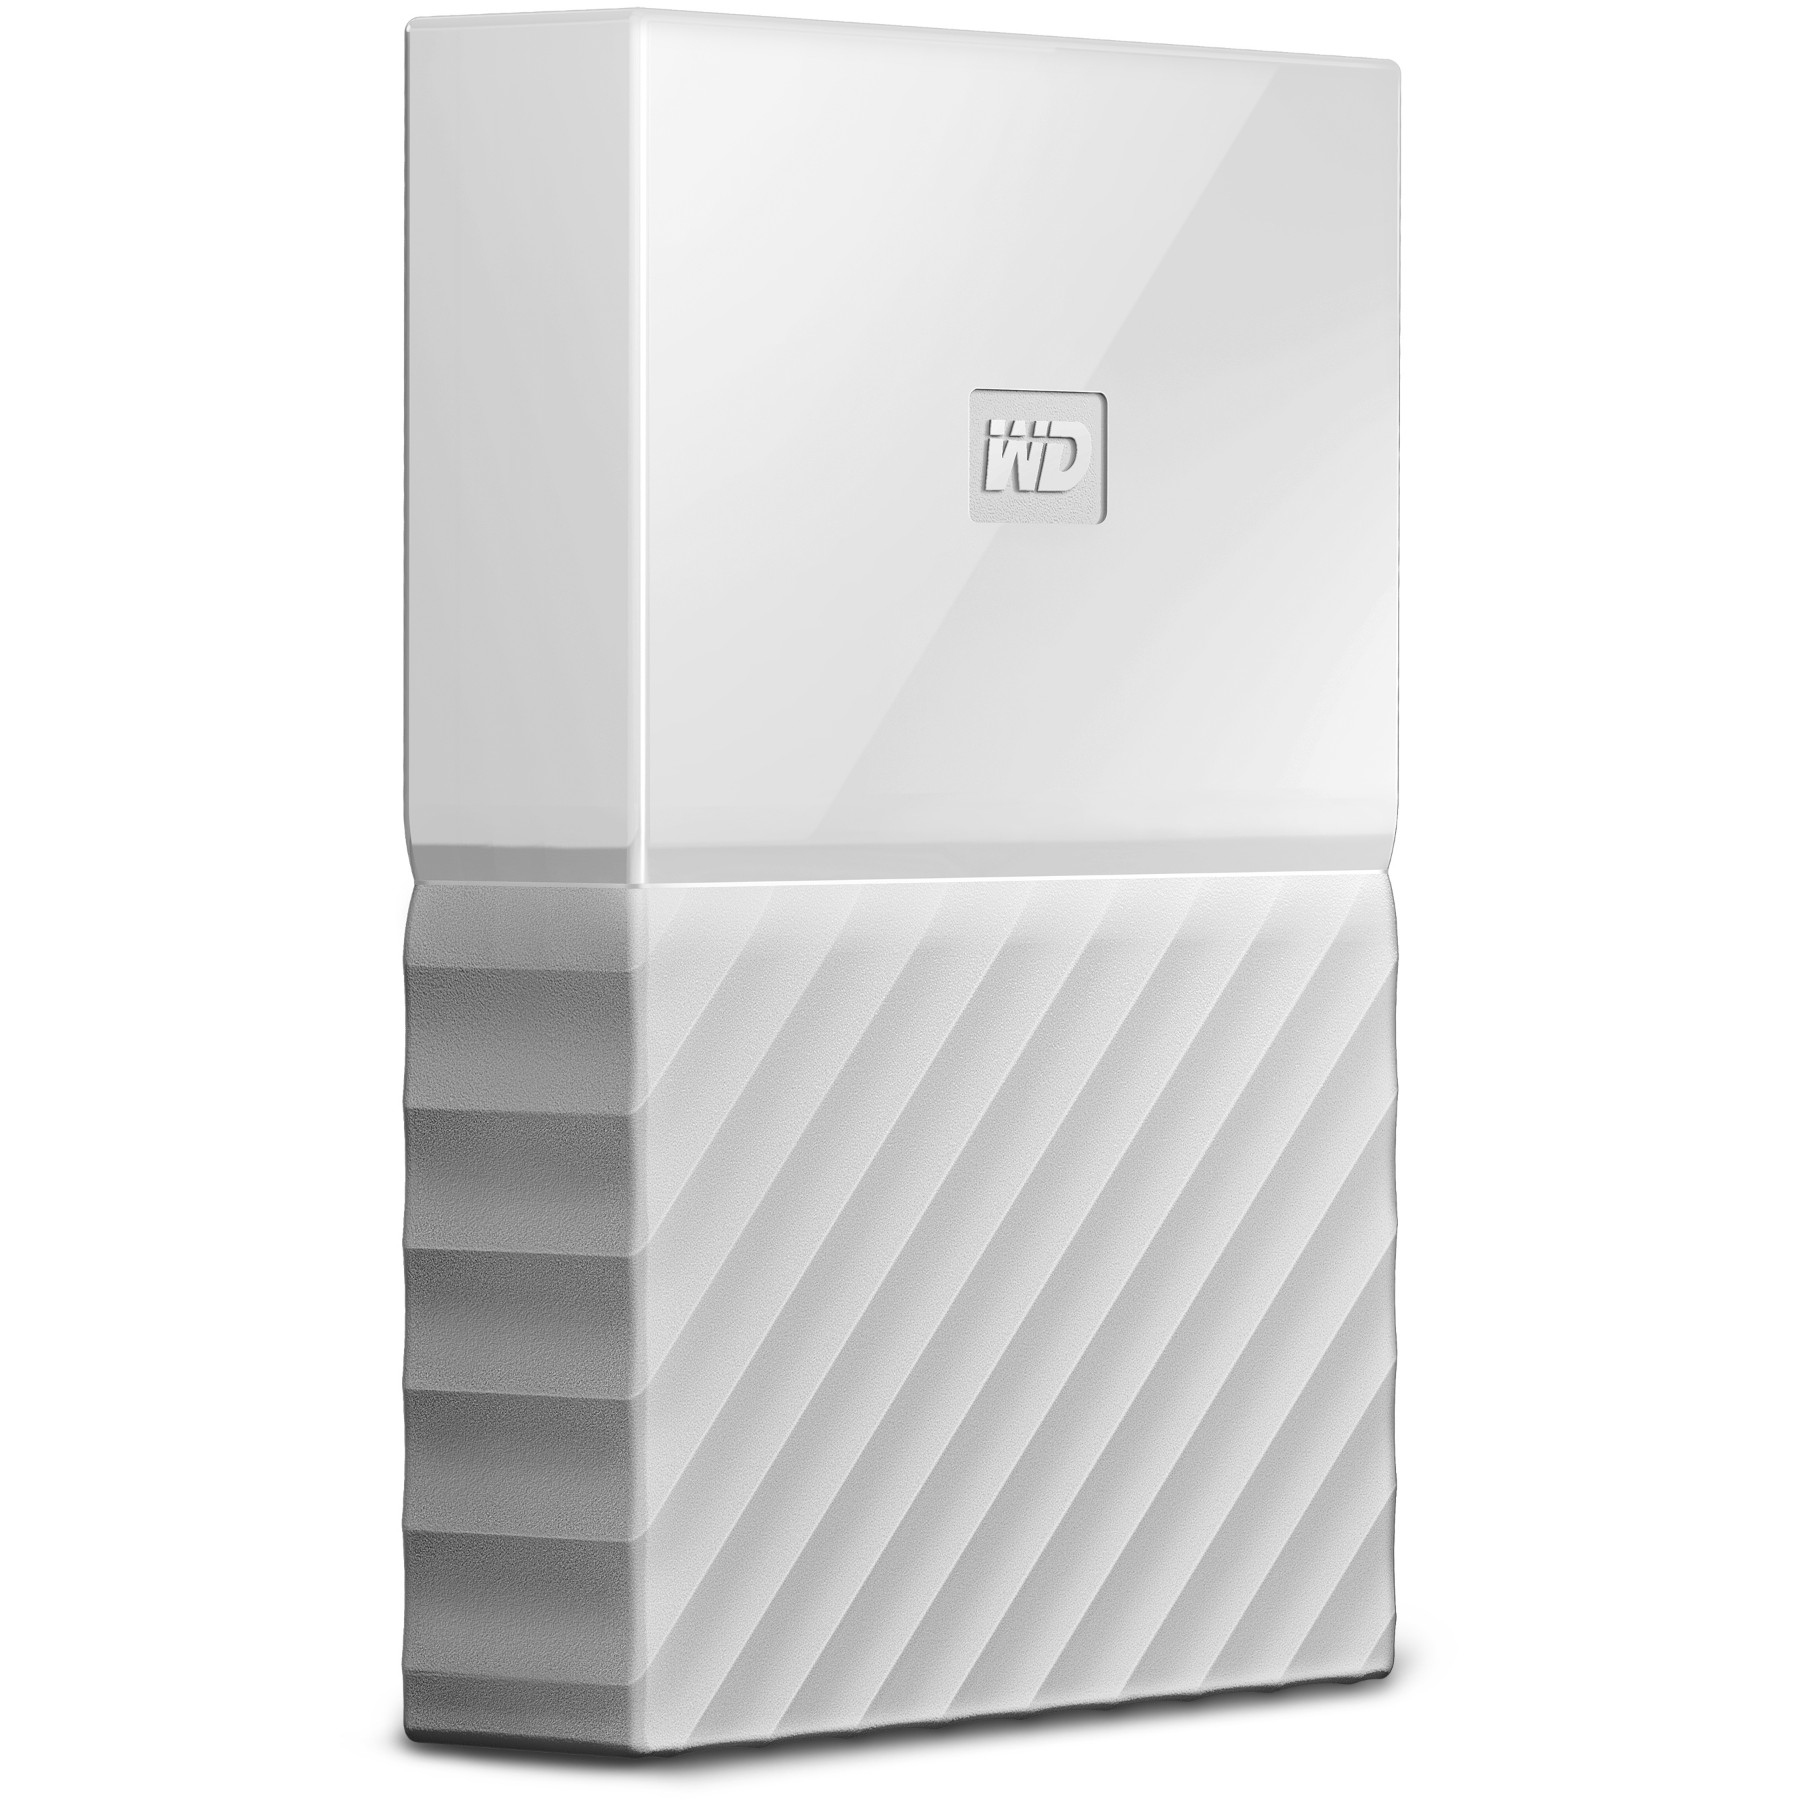 Original Western Digital My Passport 4TB White USB 3.0 External Hard Drive (WDBYFT0040BWT-EEEX)